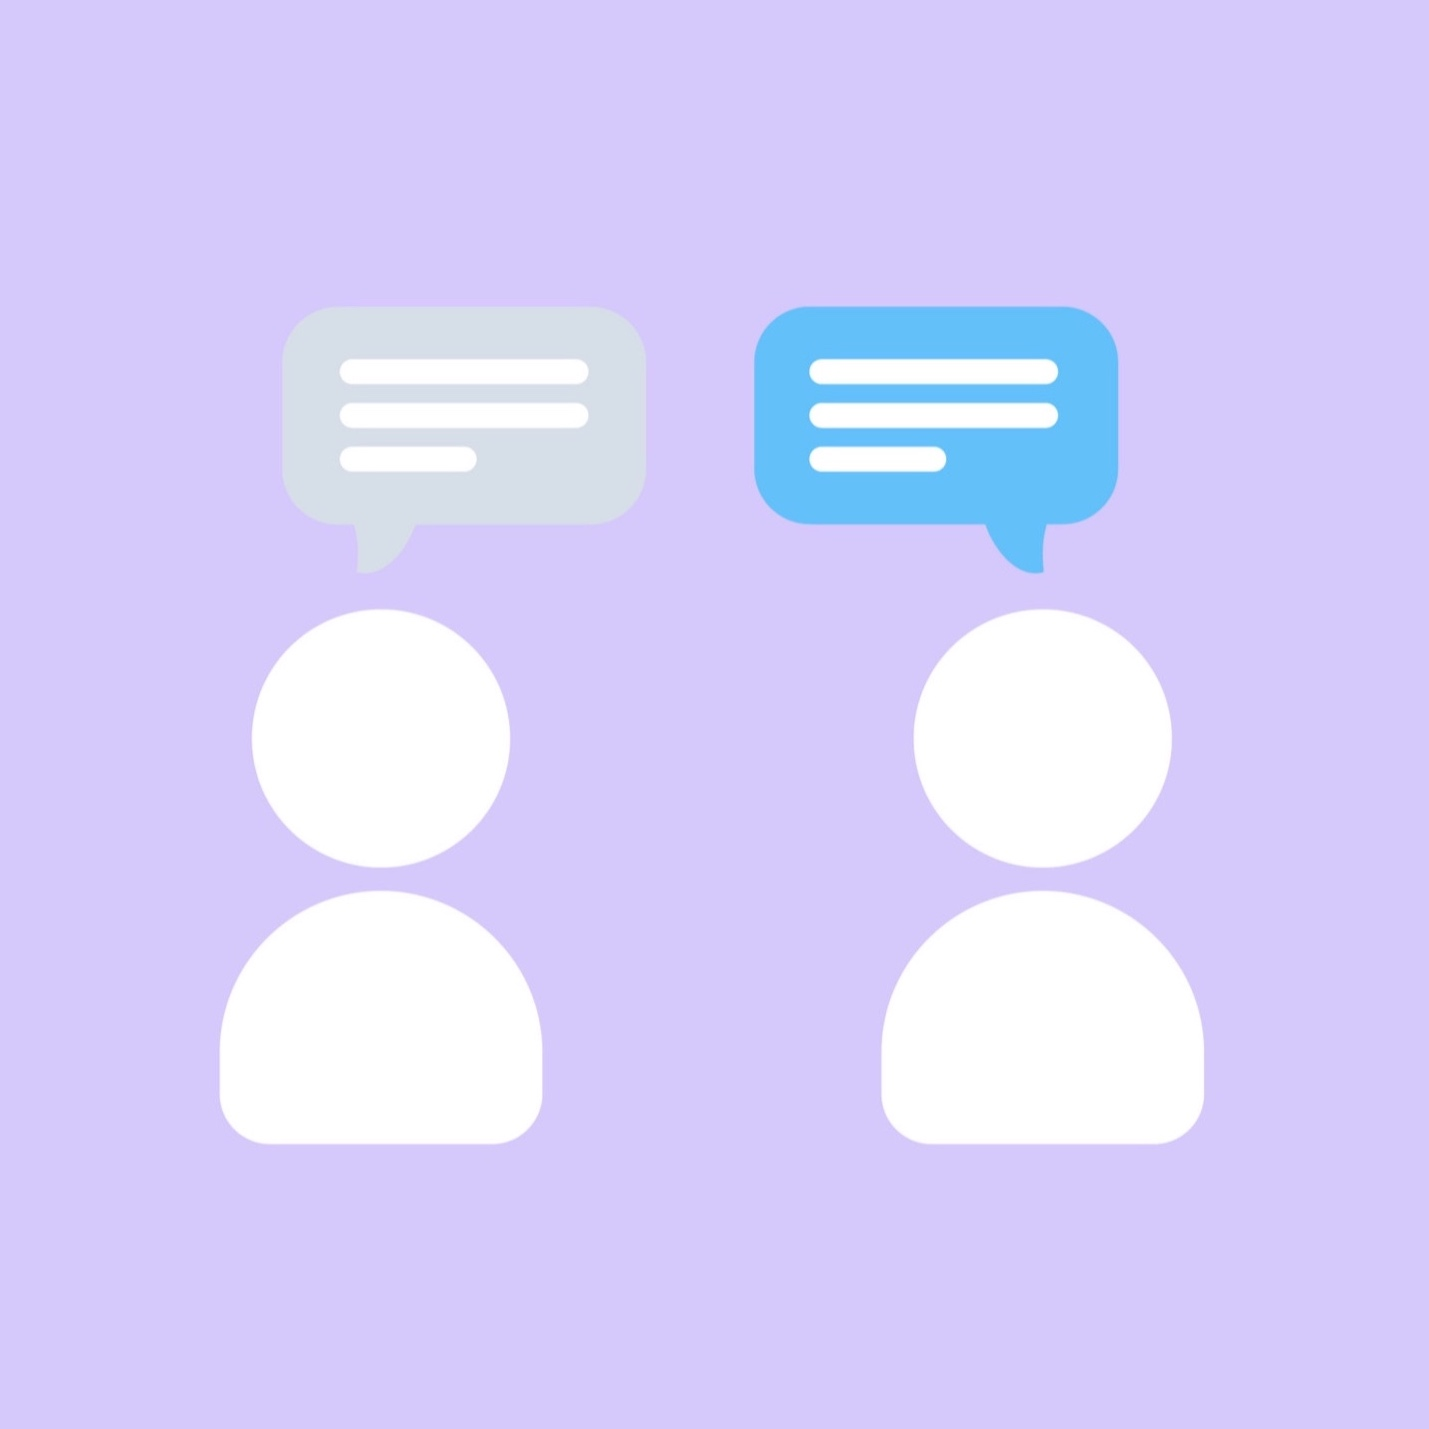 Direct Chat - Direct message any person you connect with or any team member in your group board.